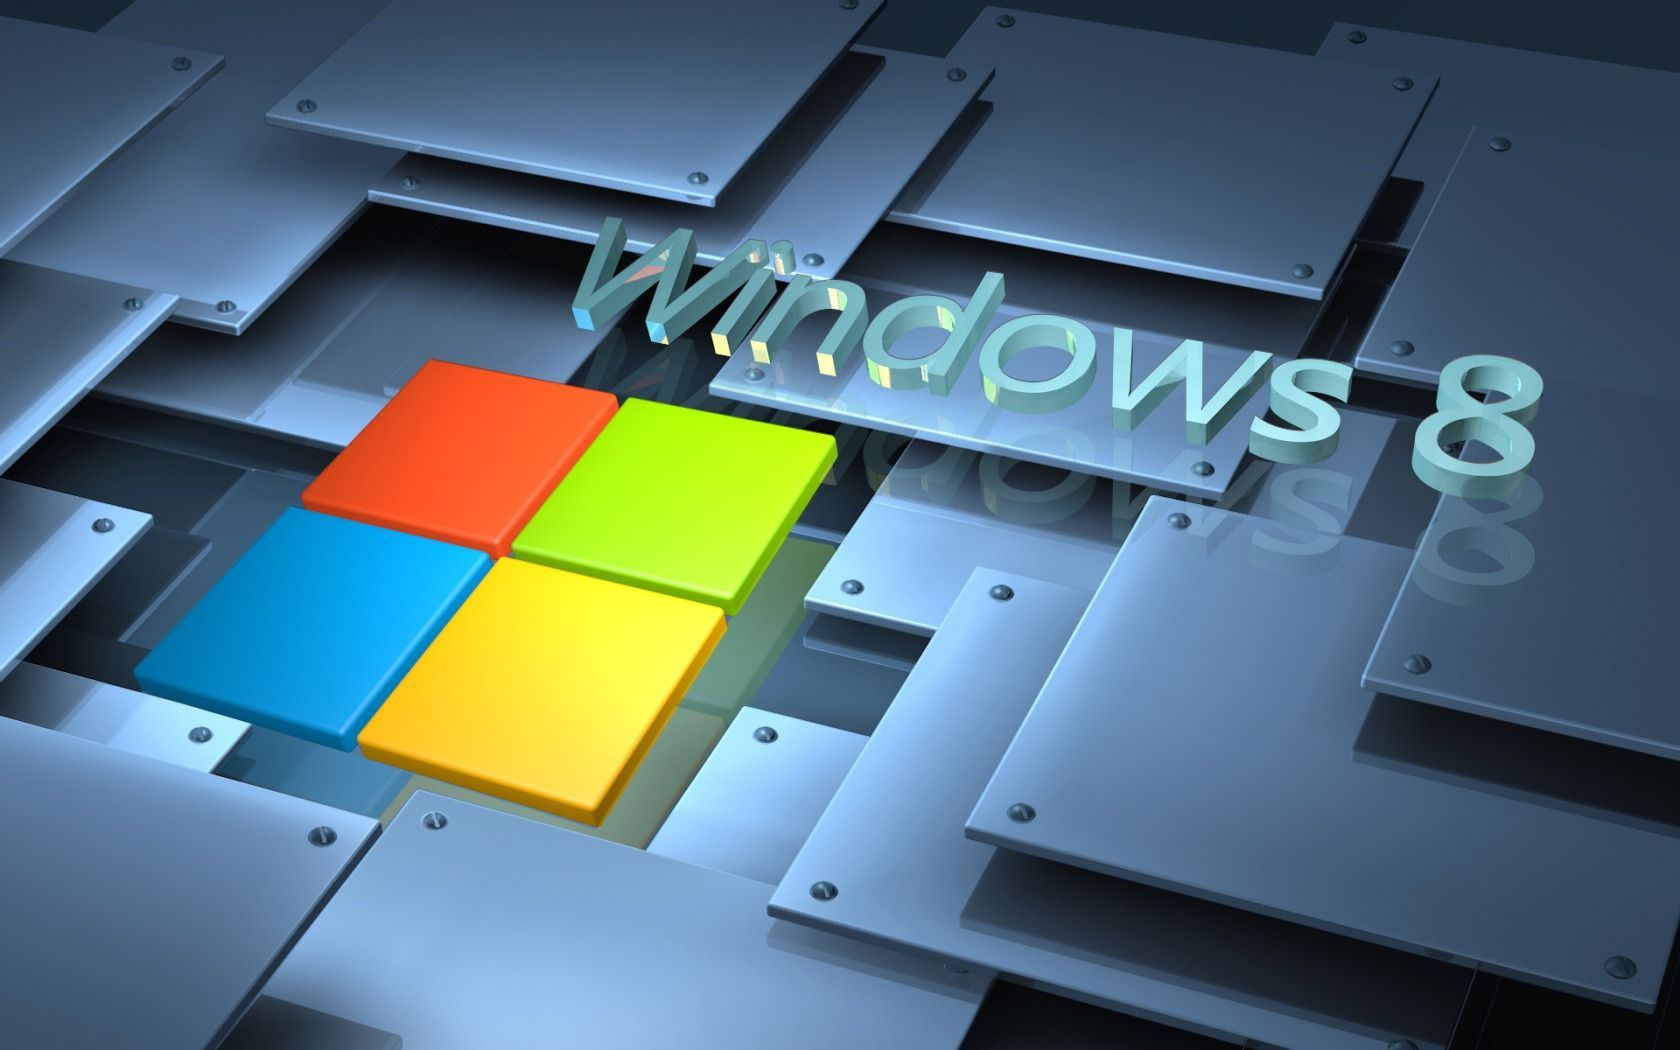 Elegant Windows 8 HD Wallpaper